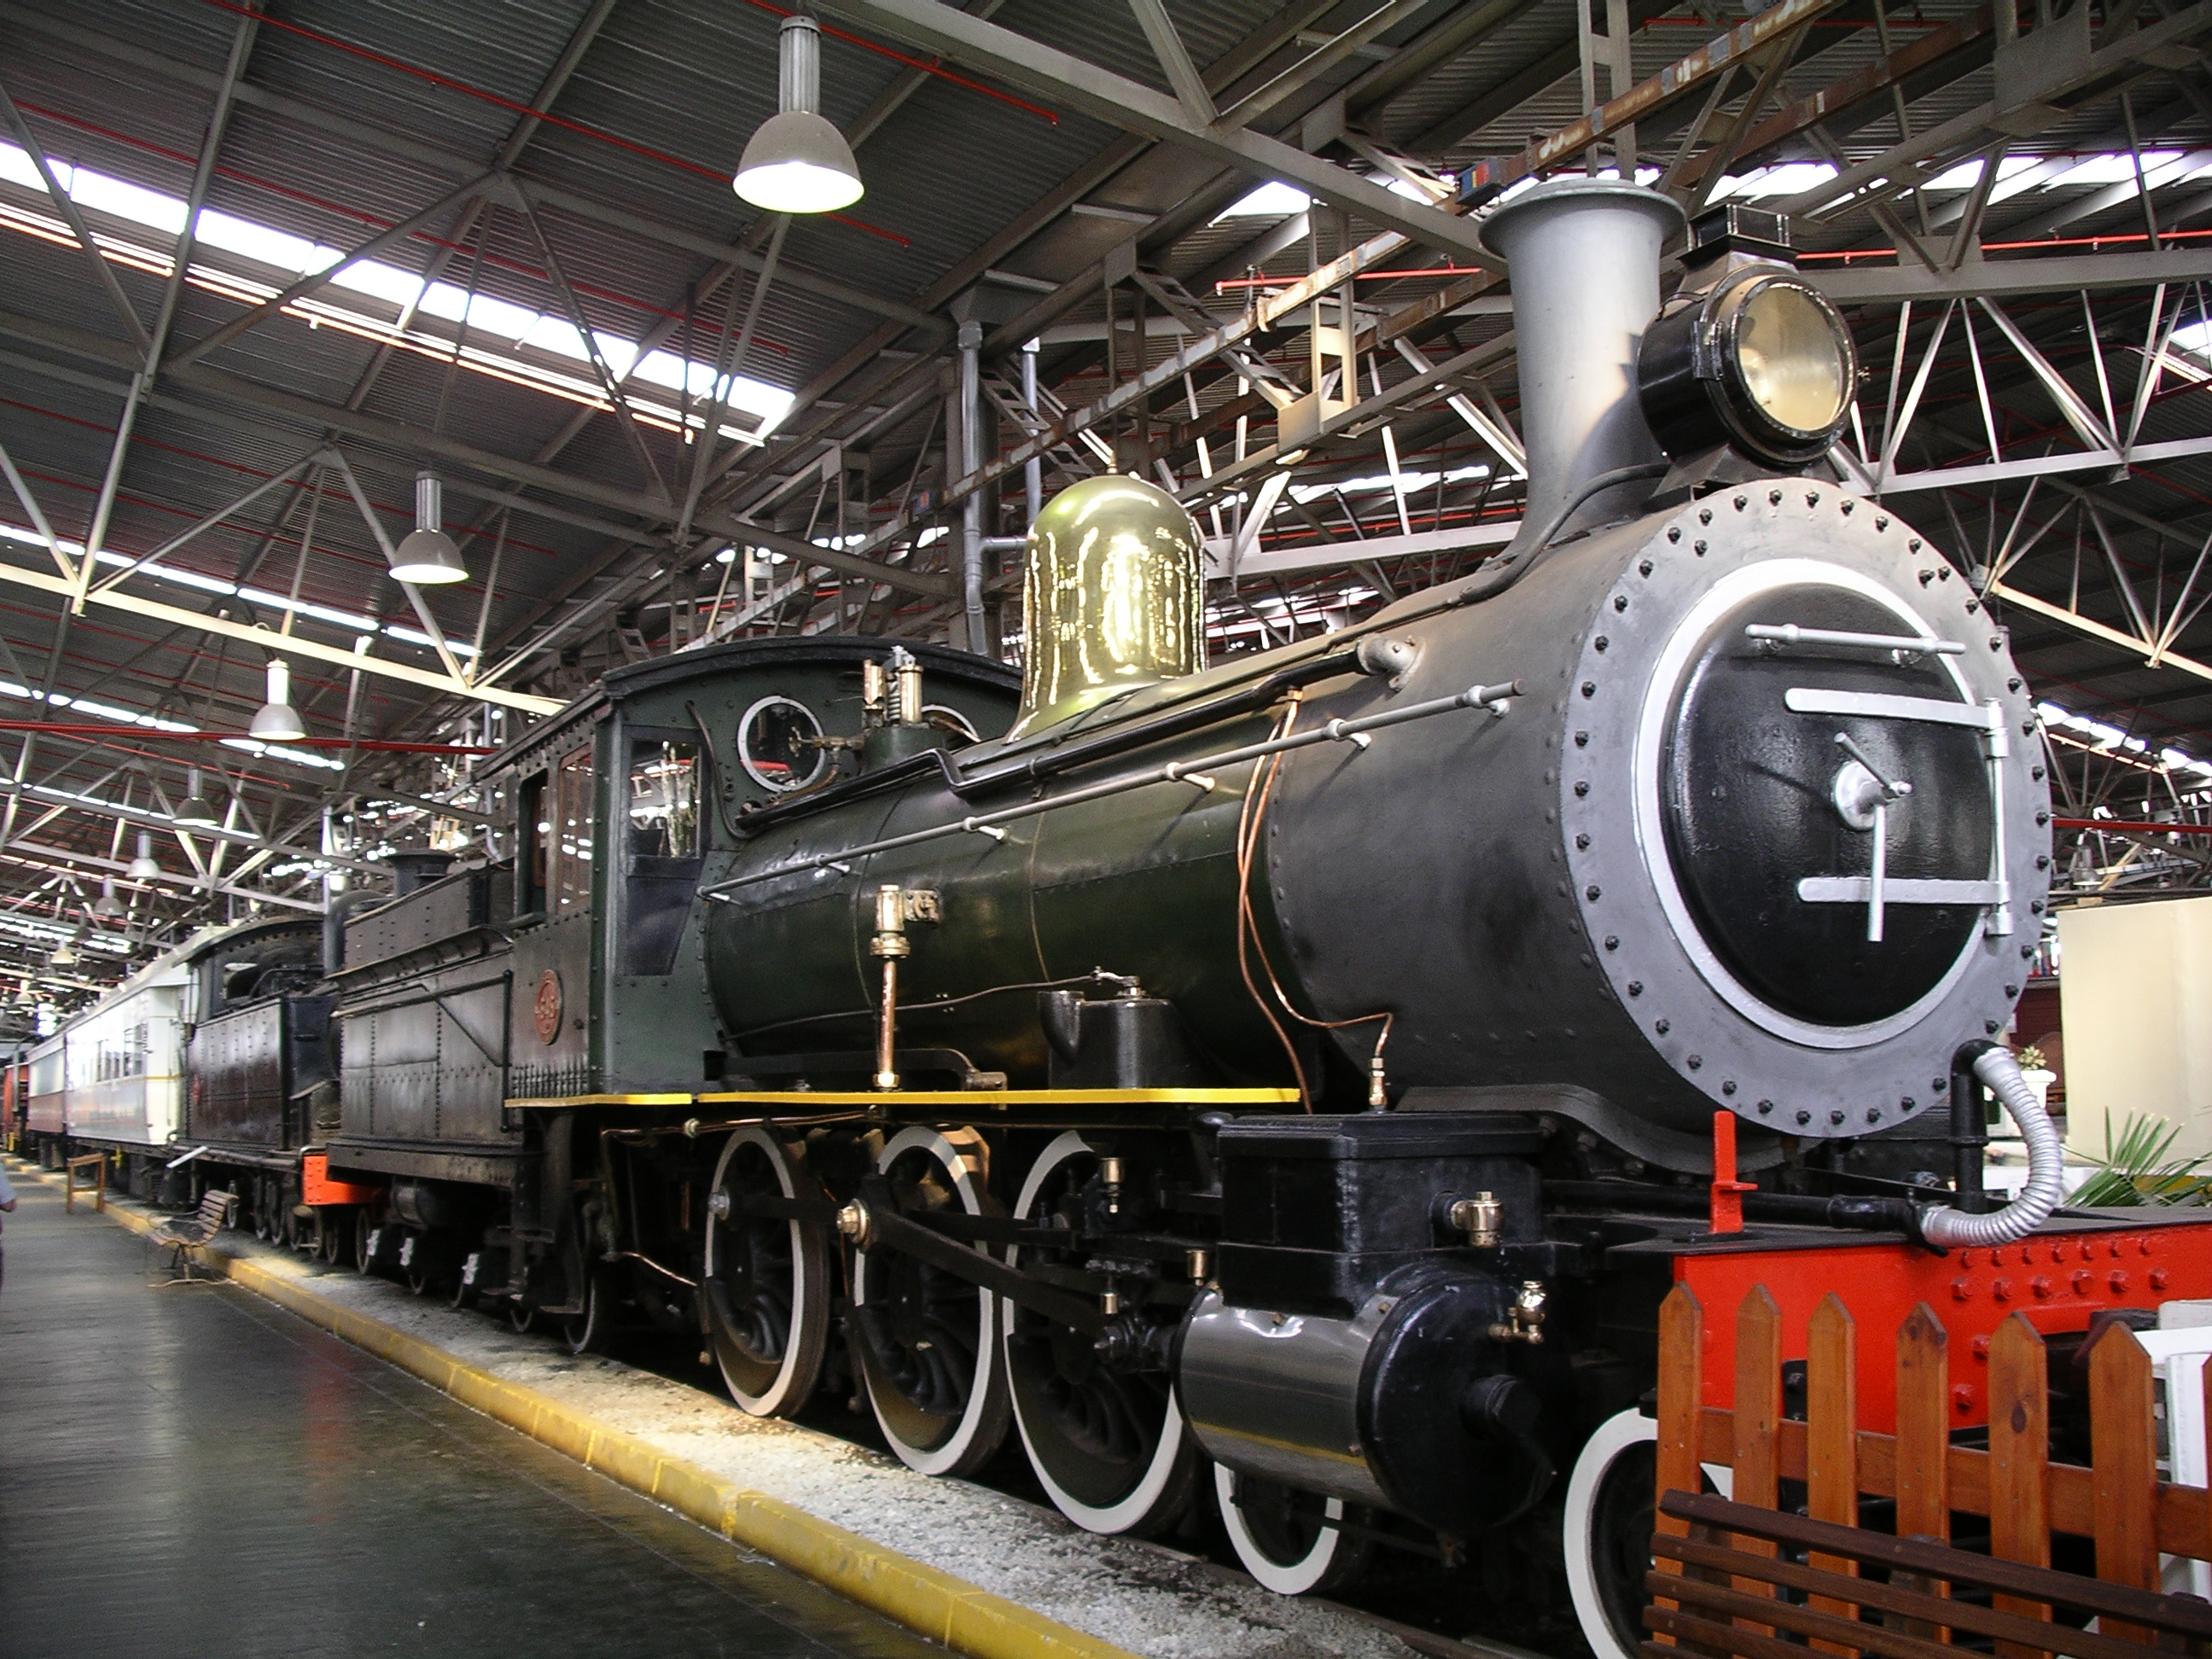 The George Outeniqua Steam locomotive